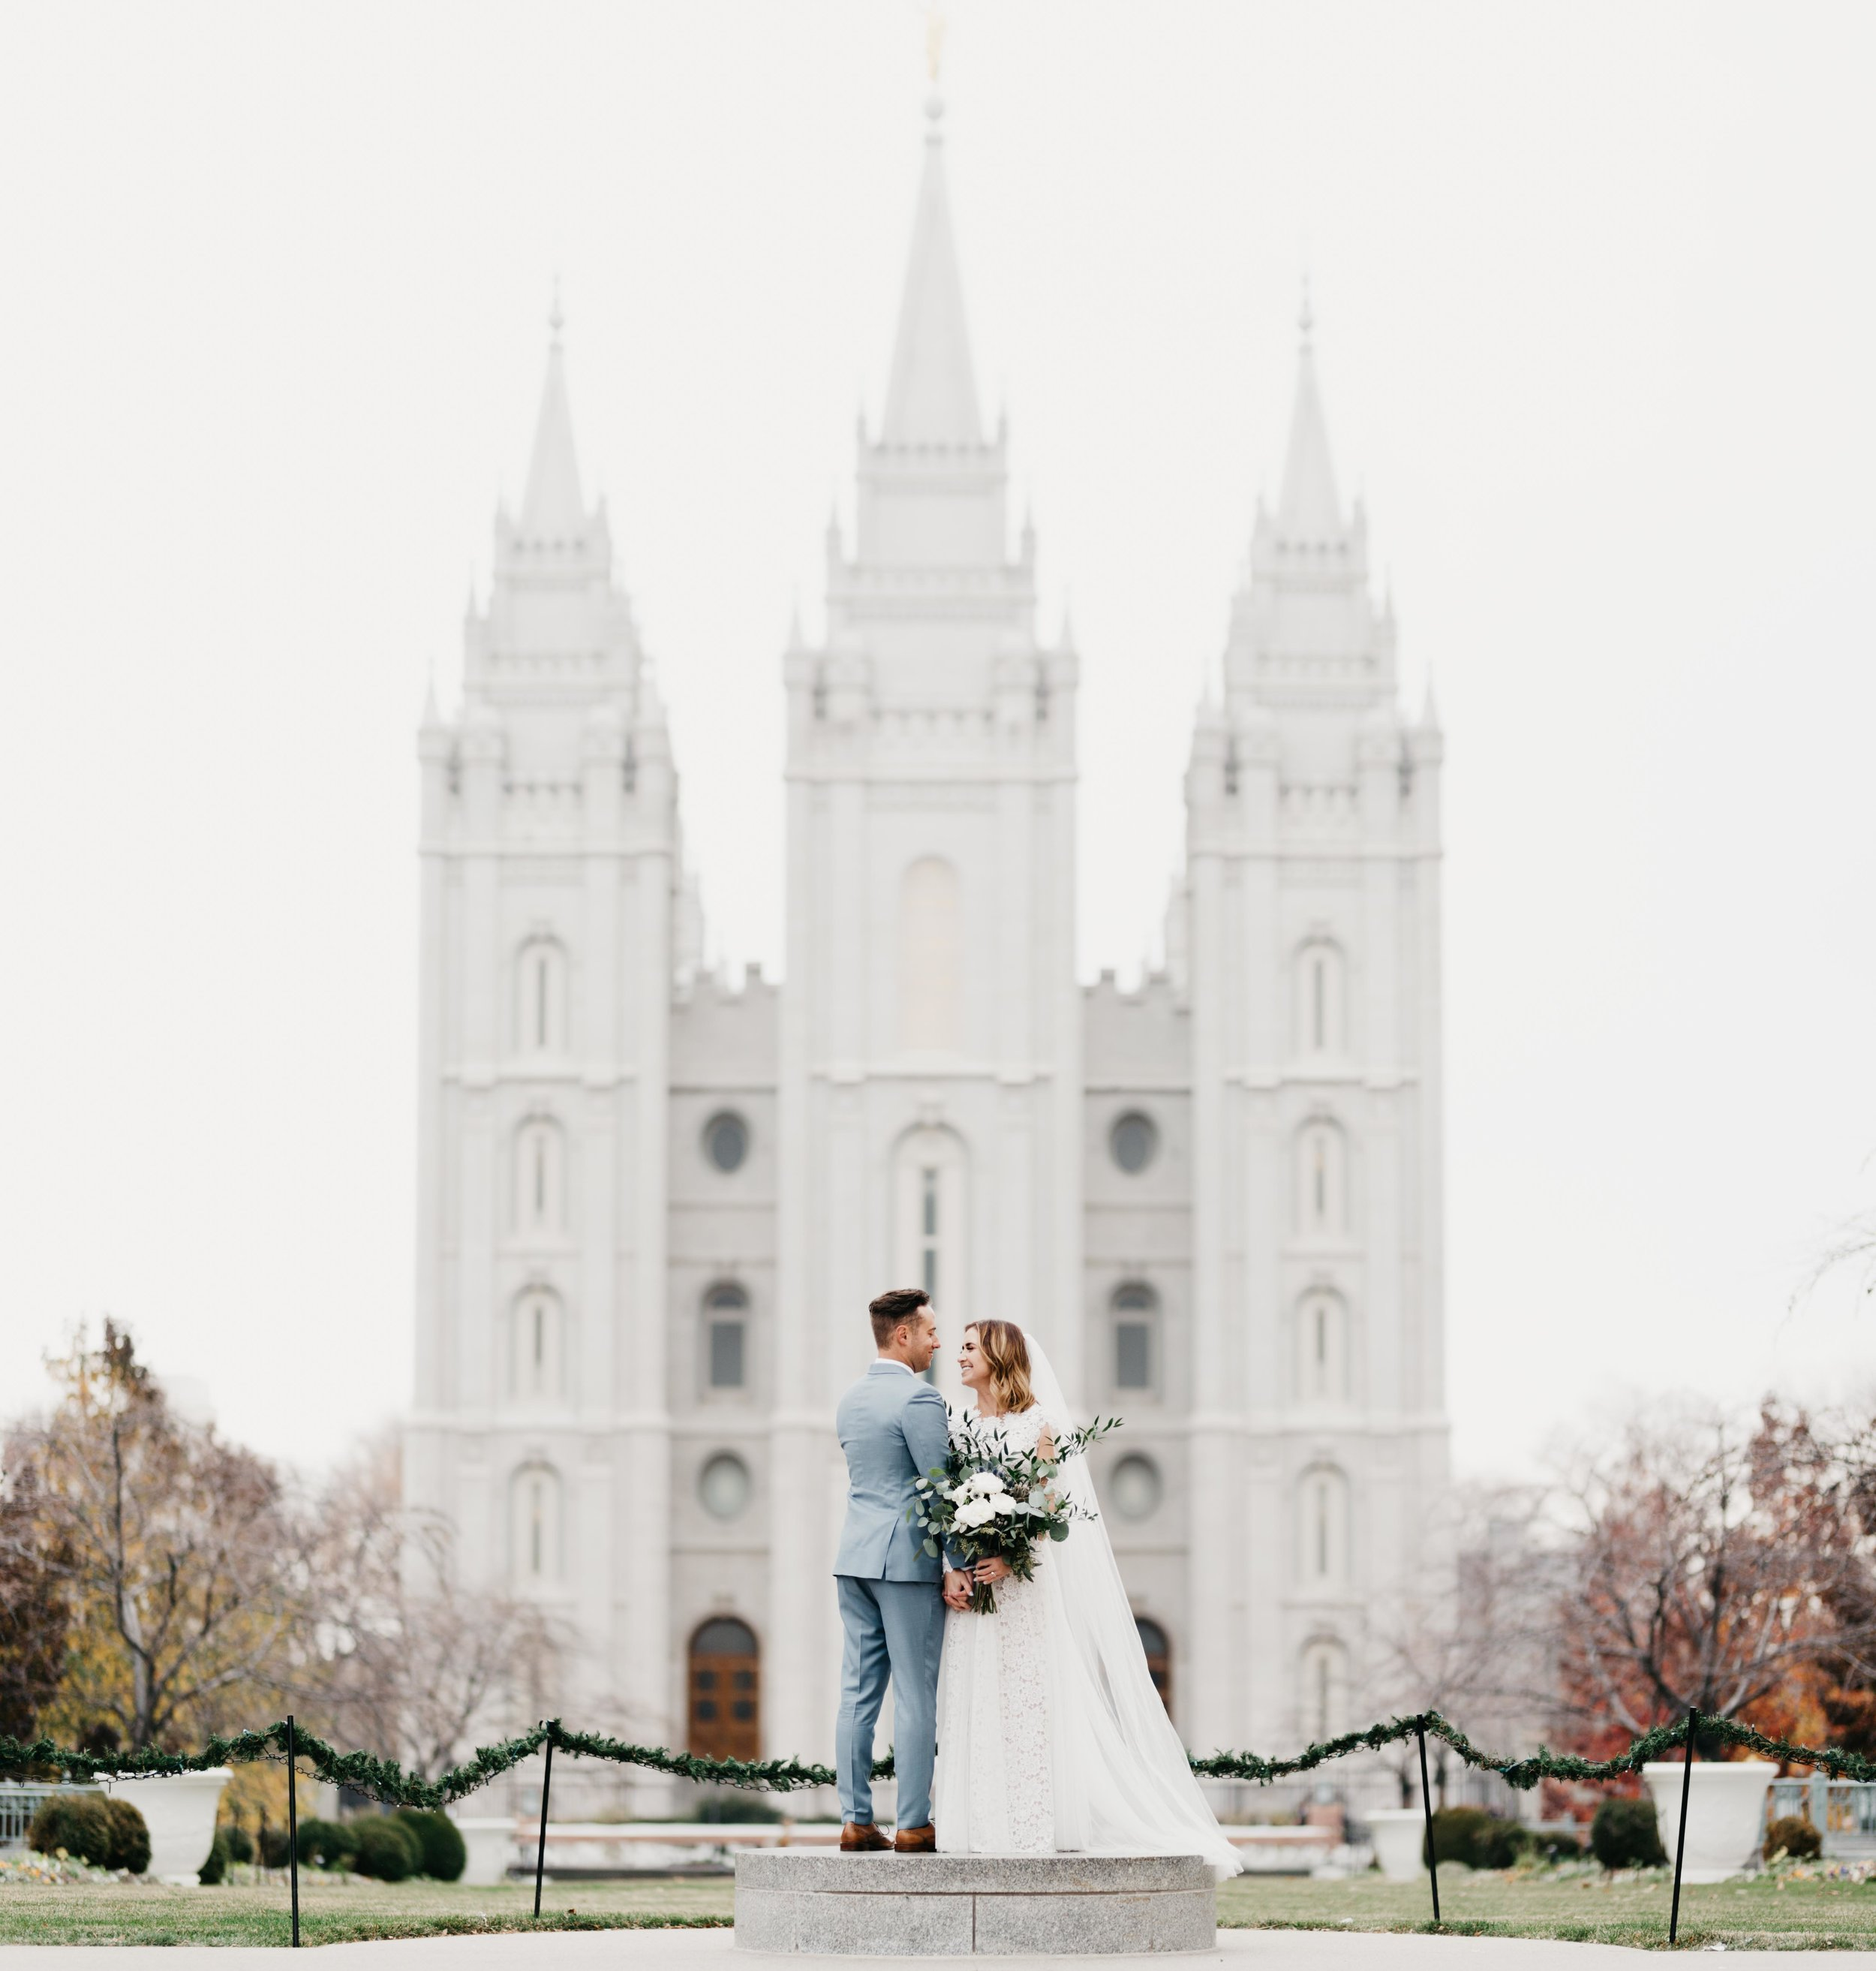 Utah-Wedding-Photographer-33.jpg